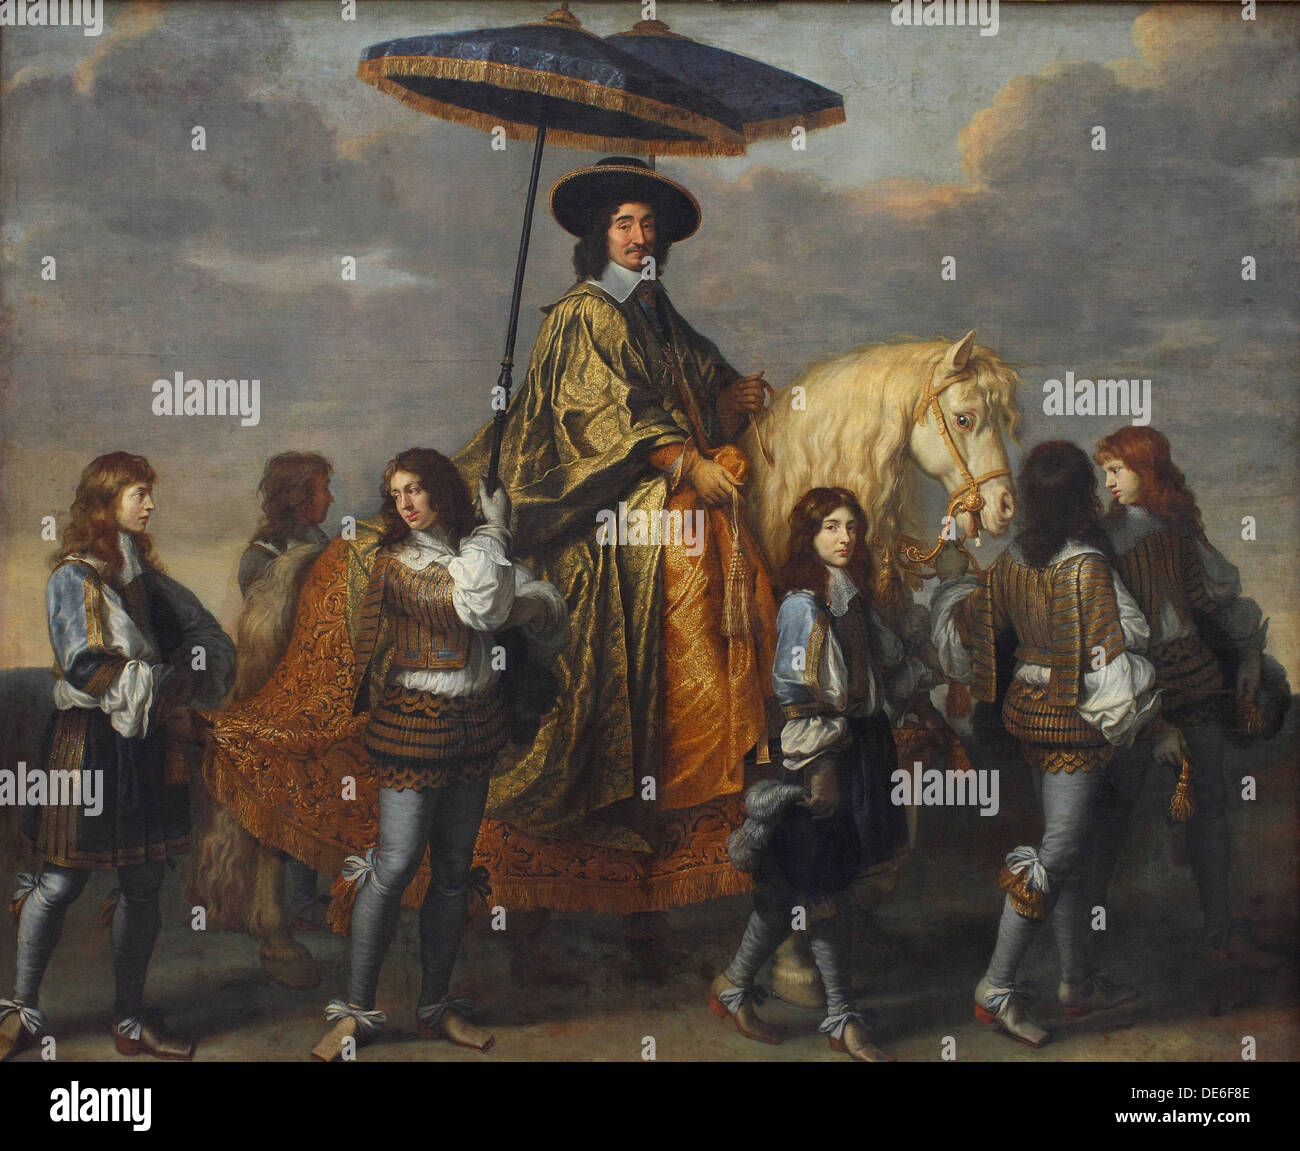 Chancellor Séguier at the Entry of Louis XIV into Paris, 1660. Artist: Le Brun, Charles (1619-1690) Stock Photo